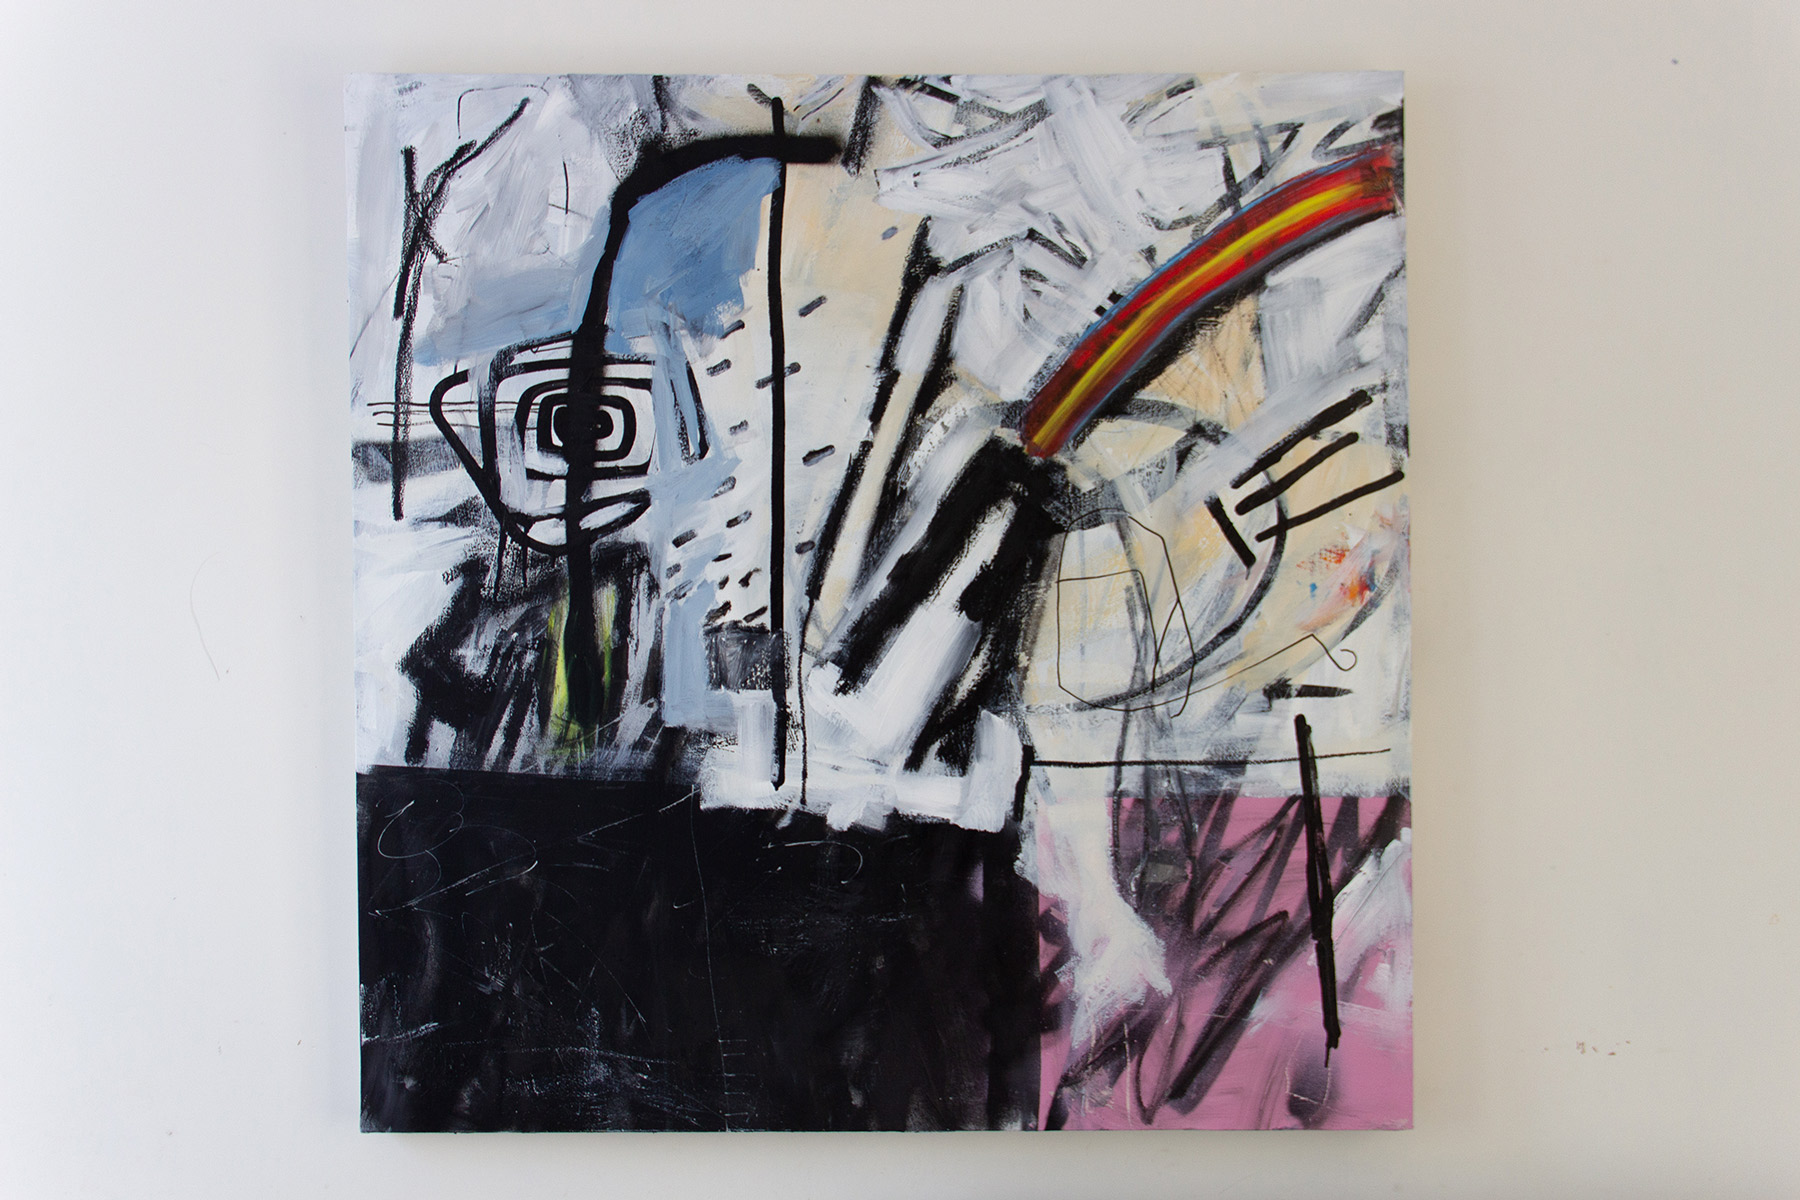 abstract-expressive-painting-brad-waters-cornwall-2018